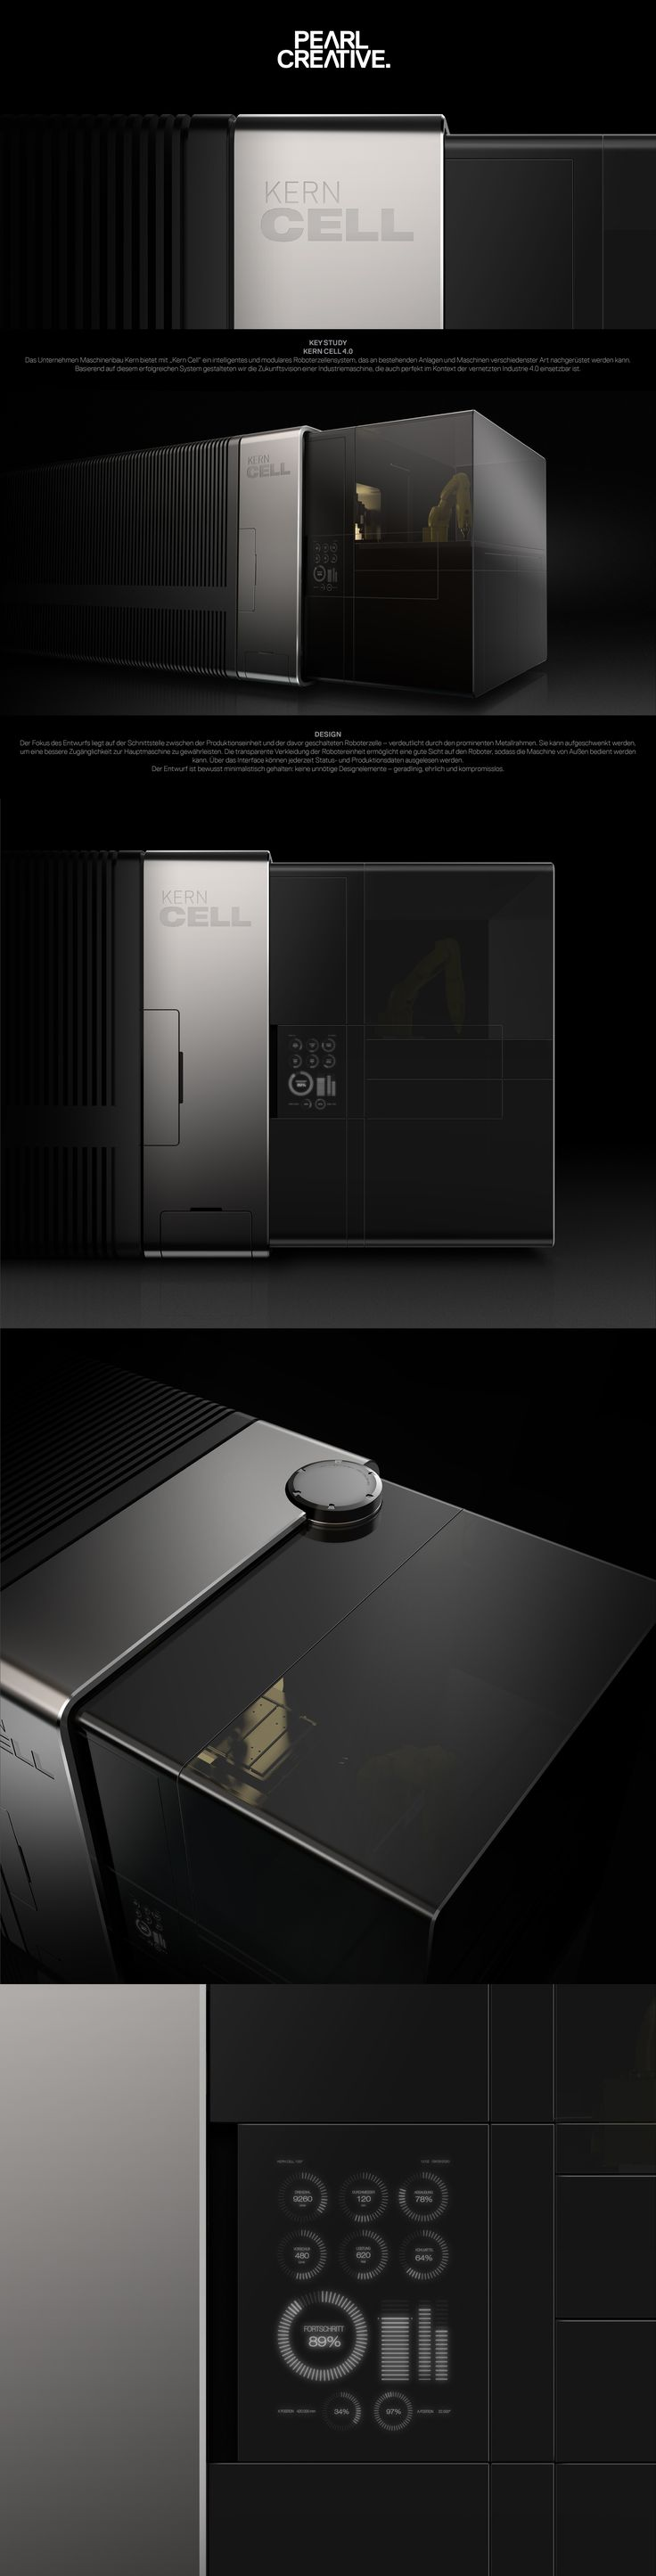 PEARL CREATIVE industrial design / UI for Kern Cell